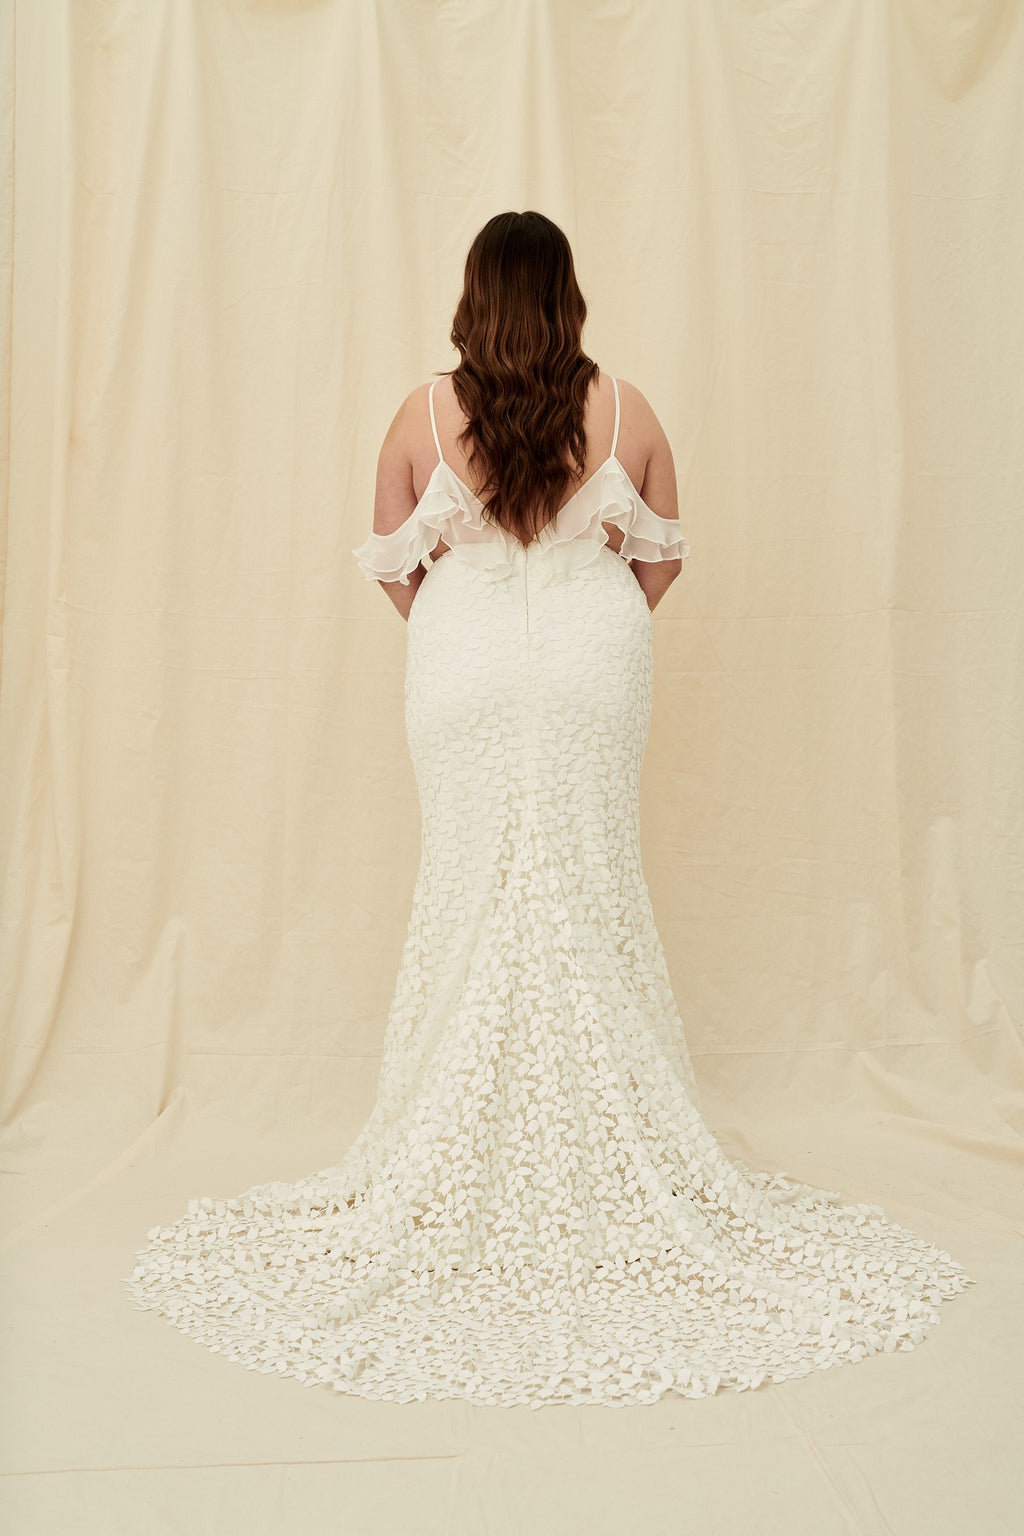 plus size fitted wedding gown with leafy lace, ruffles, and a long train